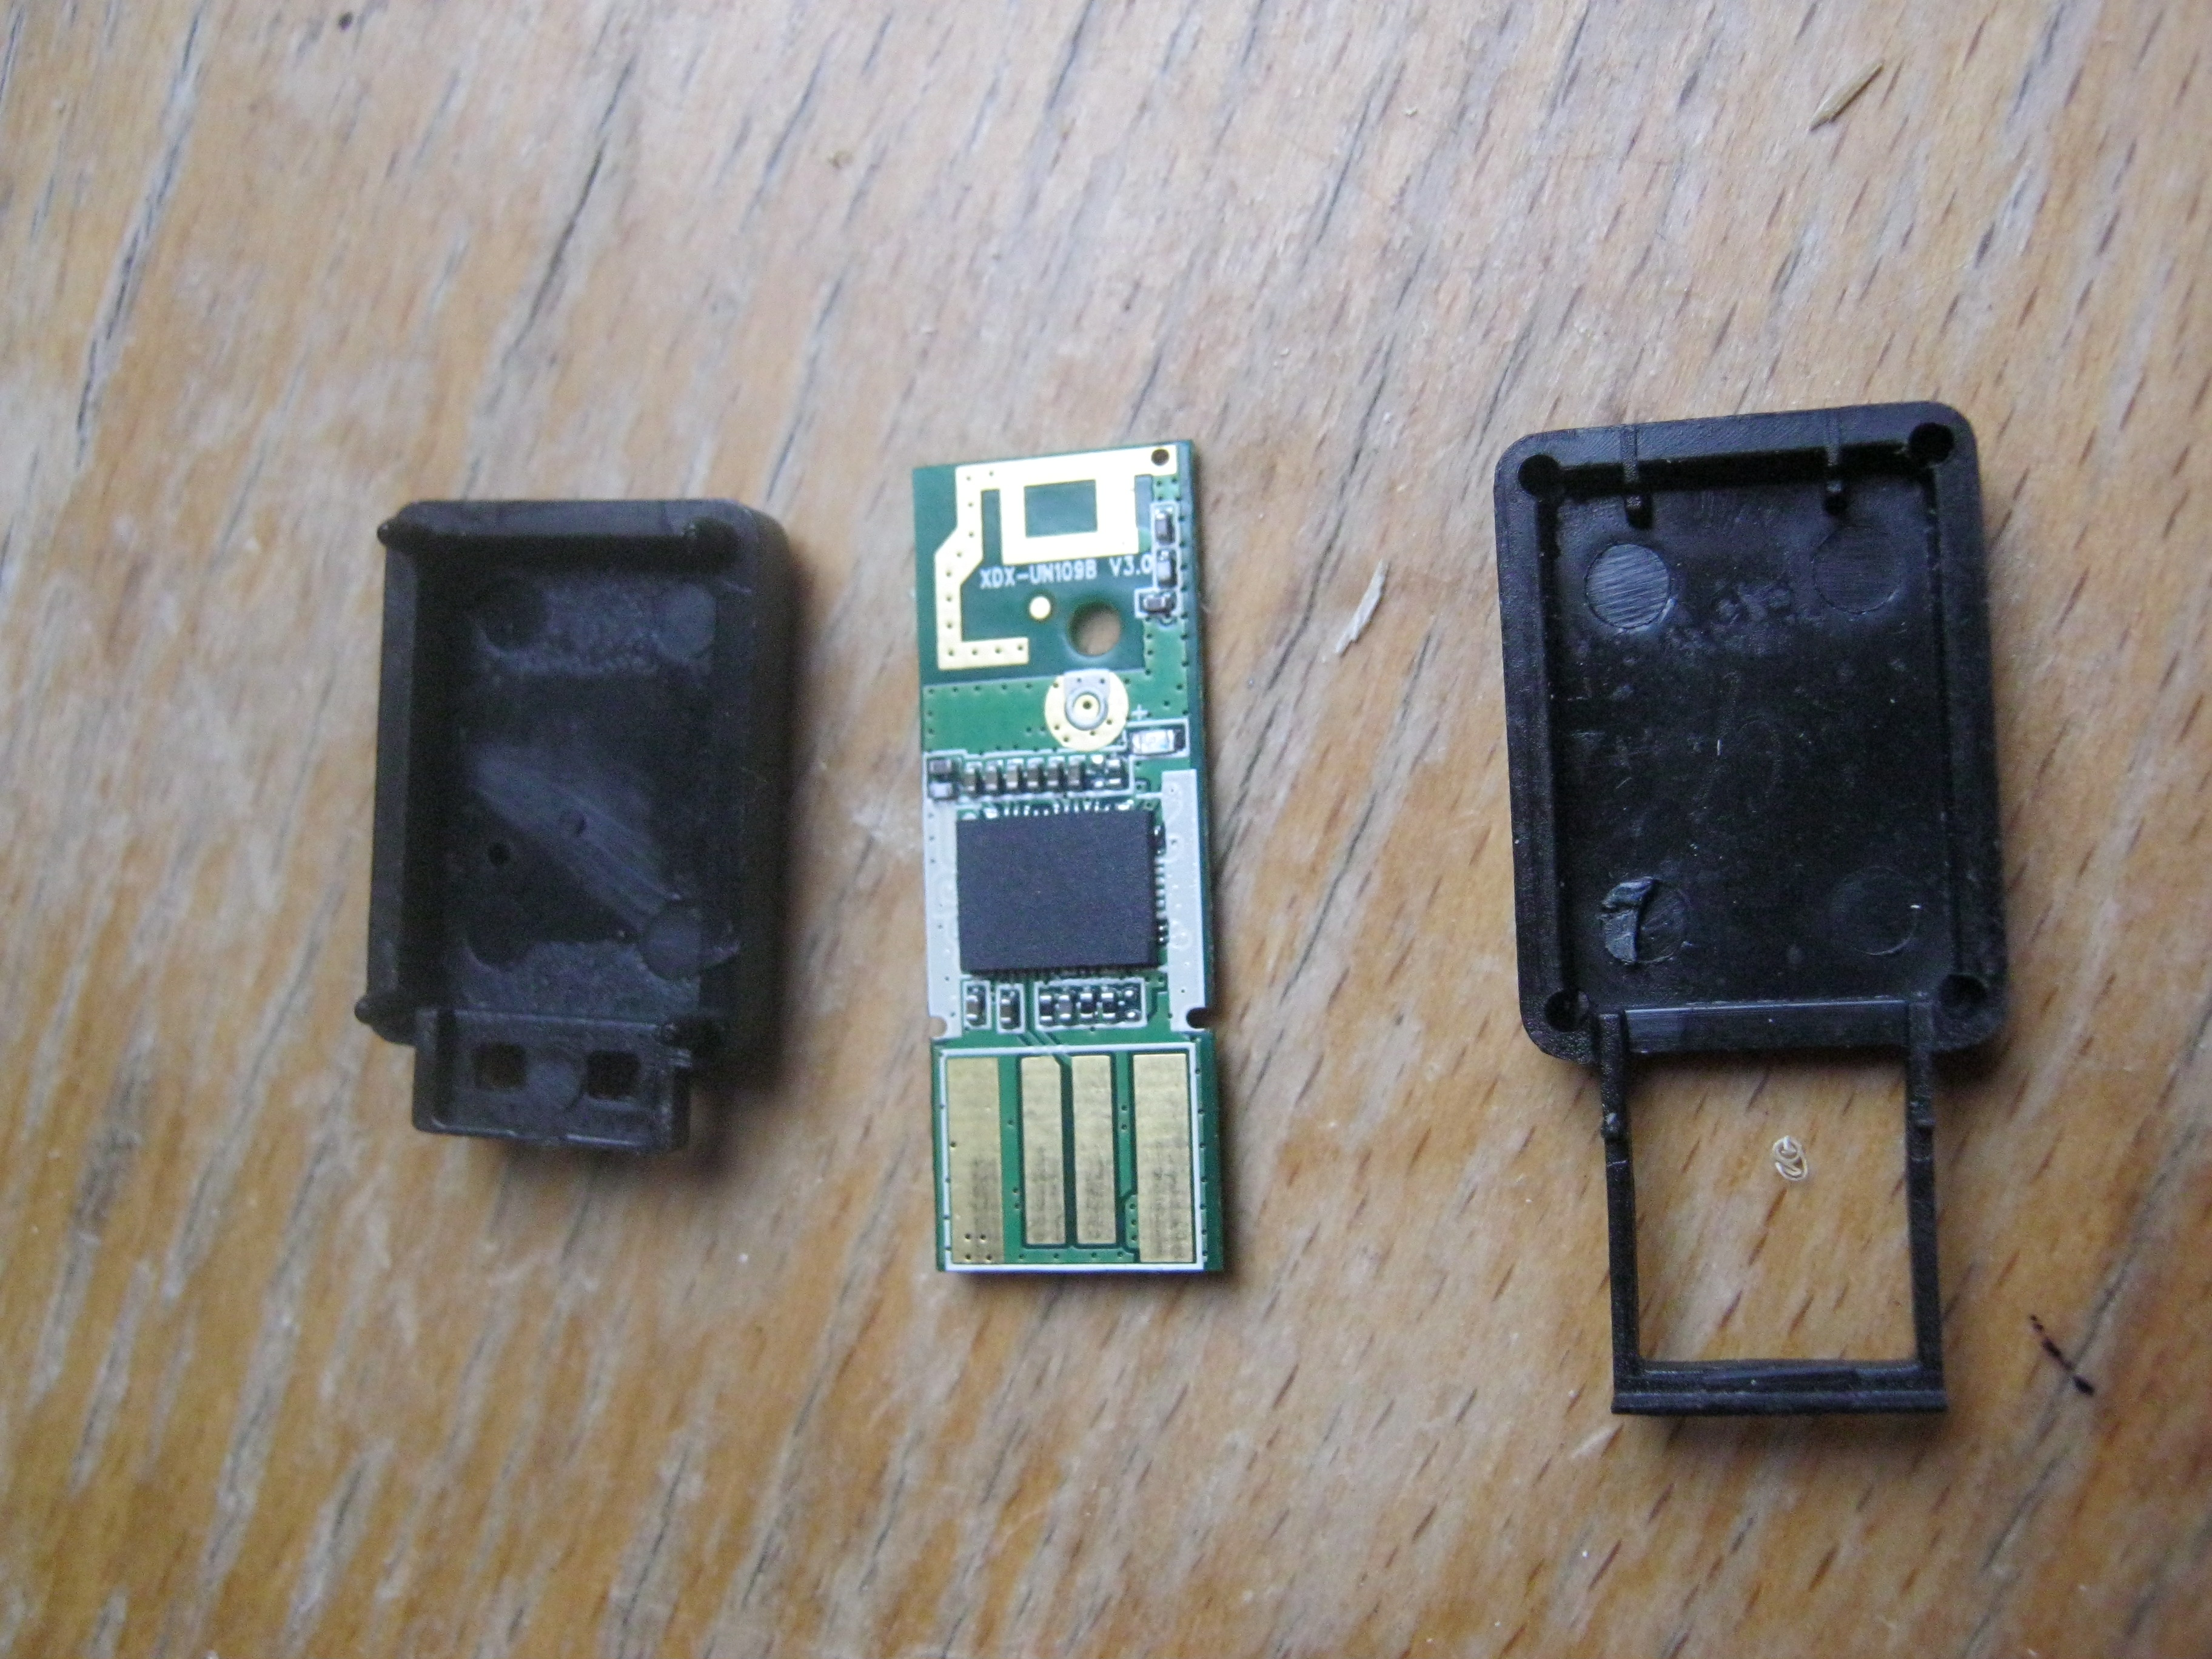 Adding Wi Fi To A Raspberry Pi Without Powered Hub Products Of In Circuitry The Two Case Sections And Circuit Board That Comprise Dongle